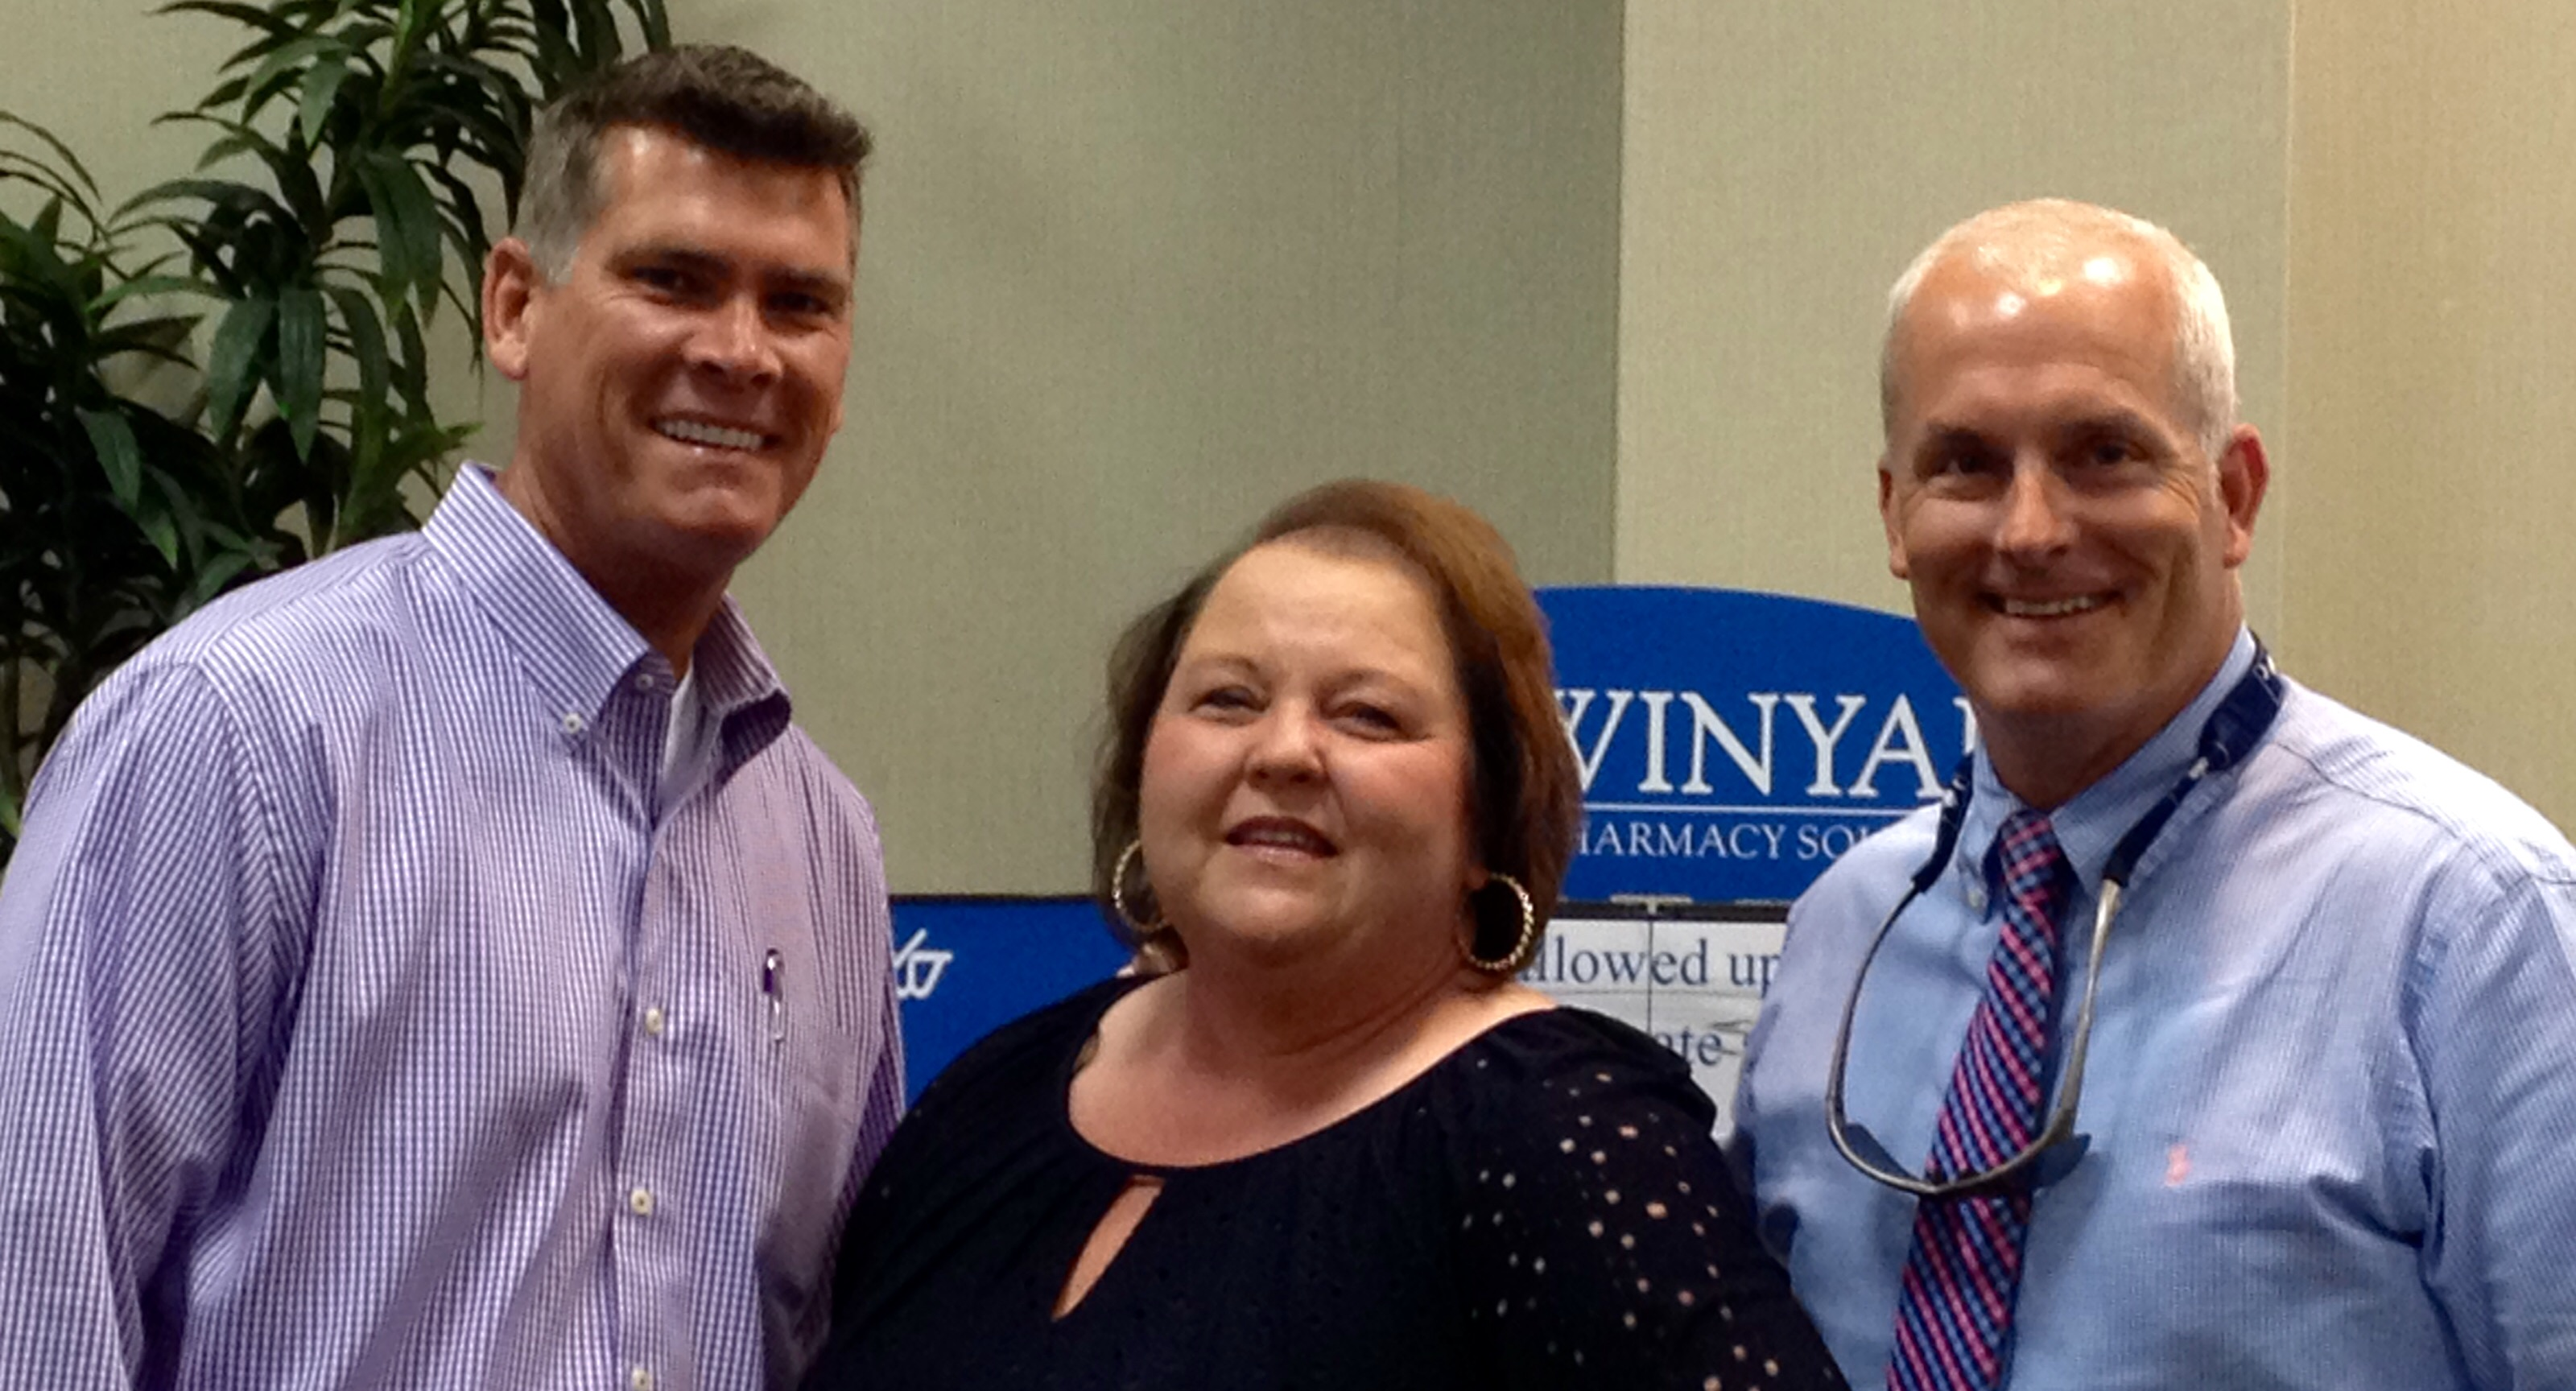 David Whitlock, Susan Lecklitner and Kevin Dixon represented Winyah Pharmacy at the ACHCA conference.